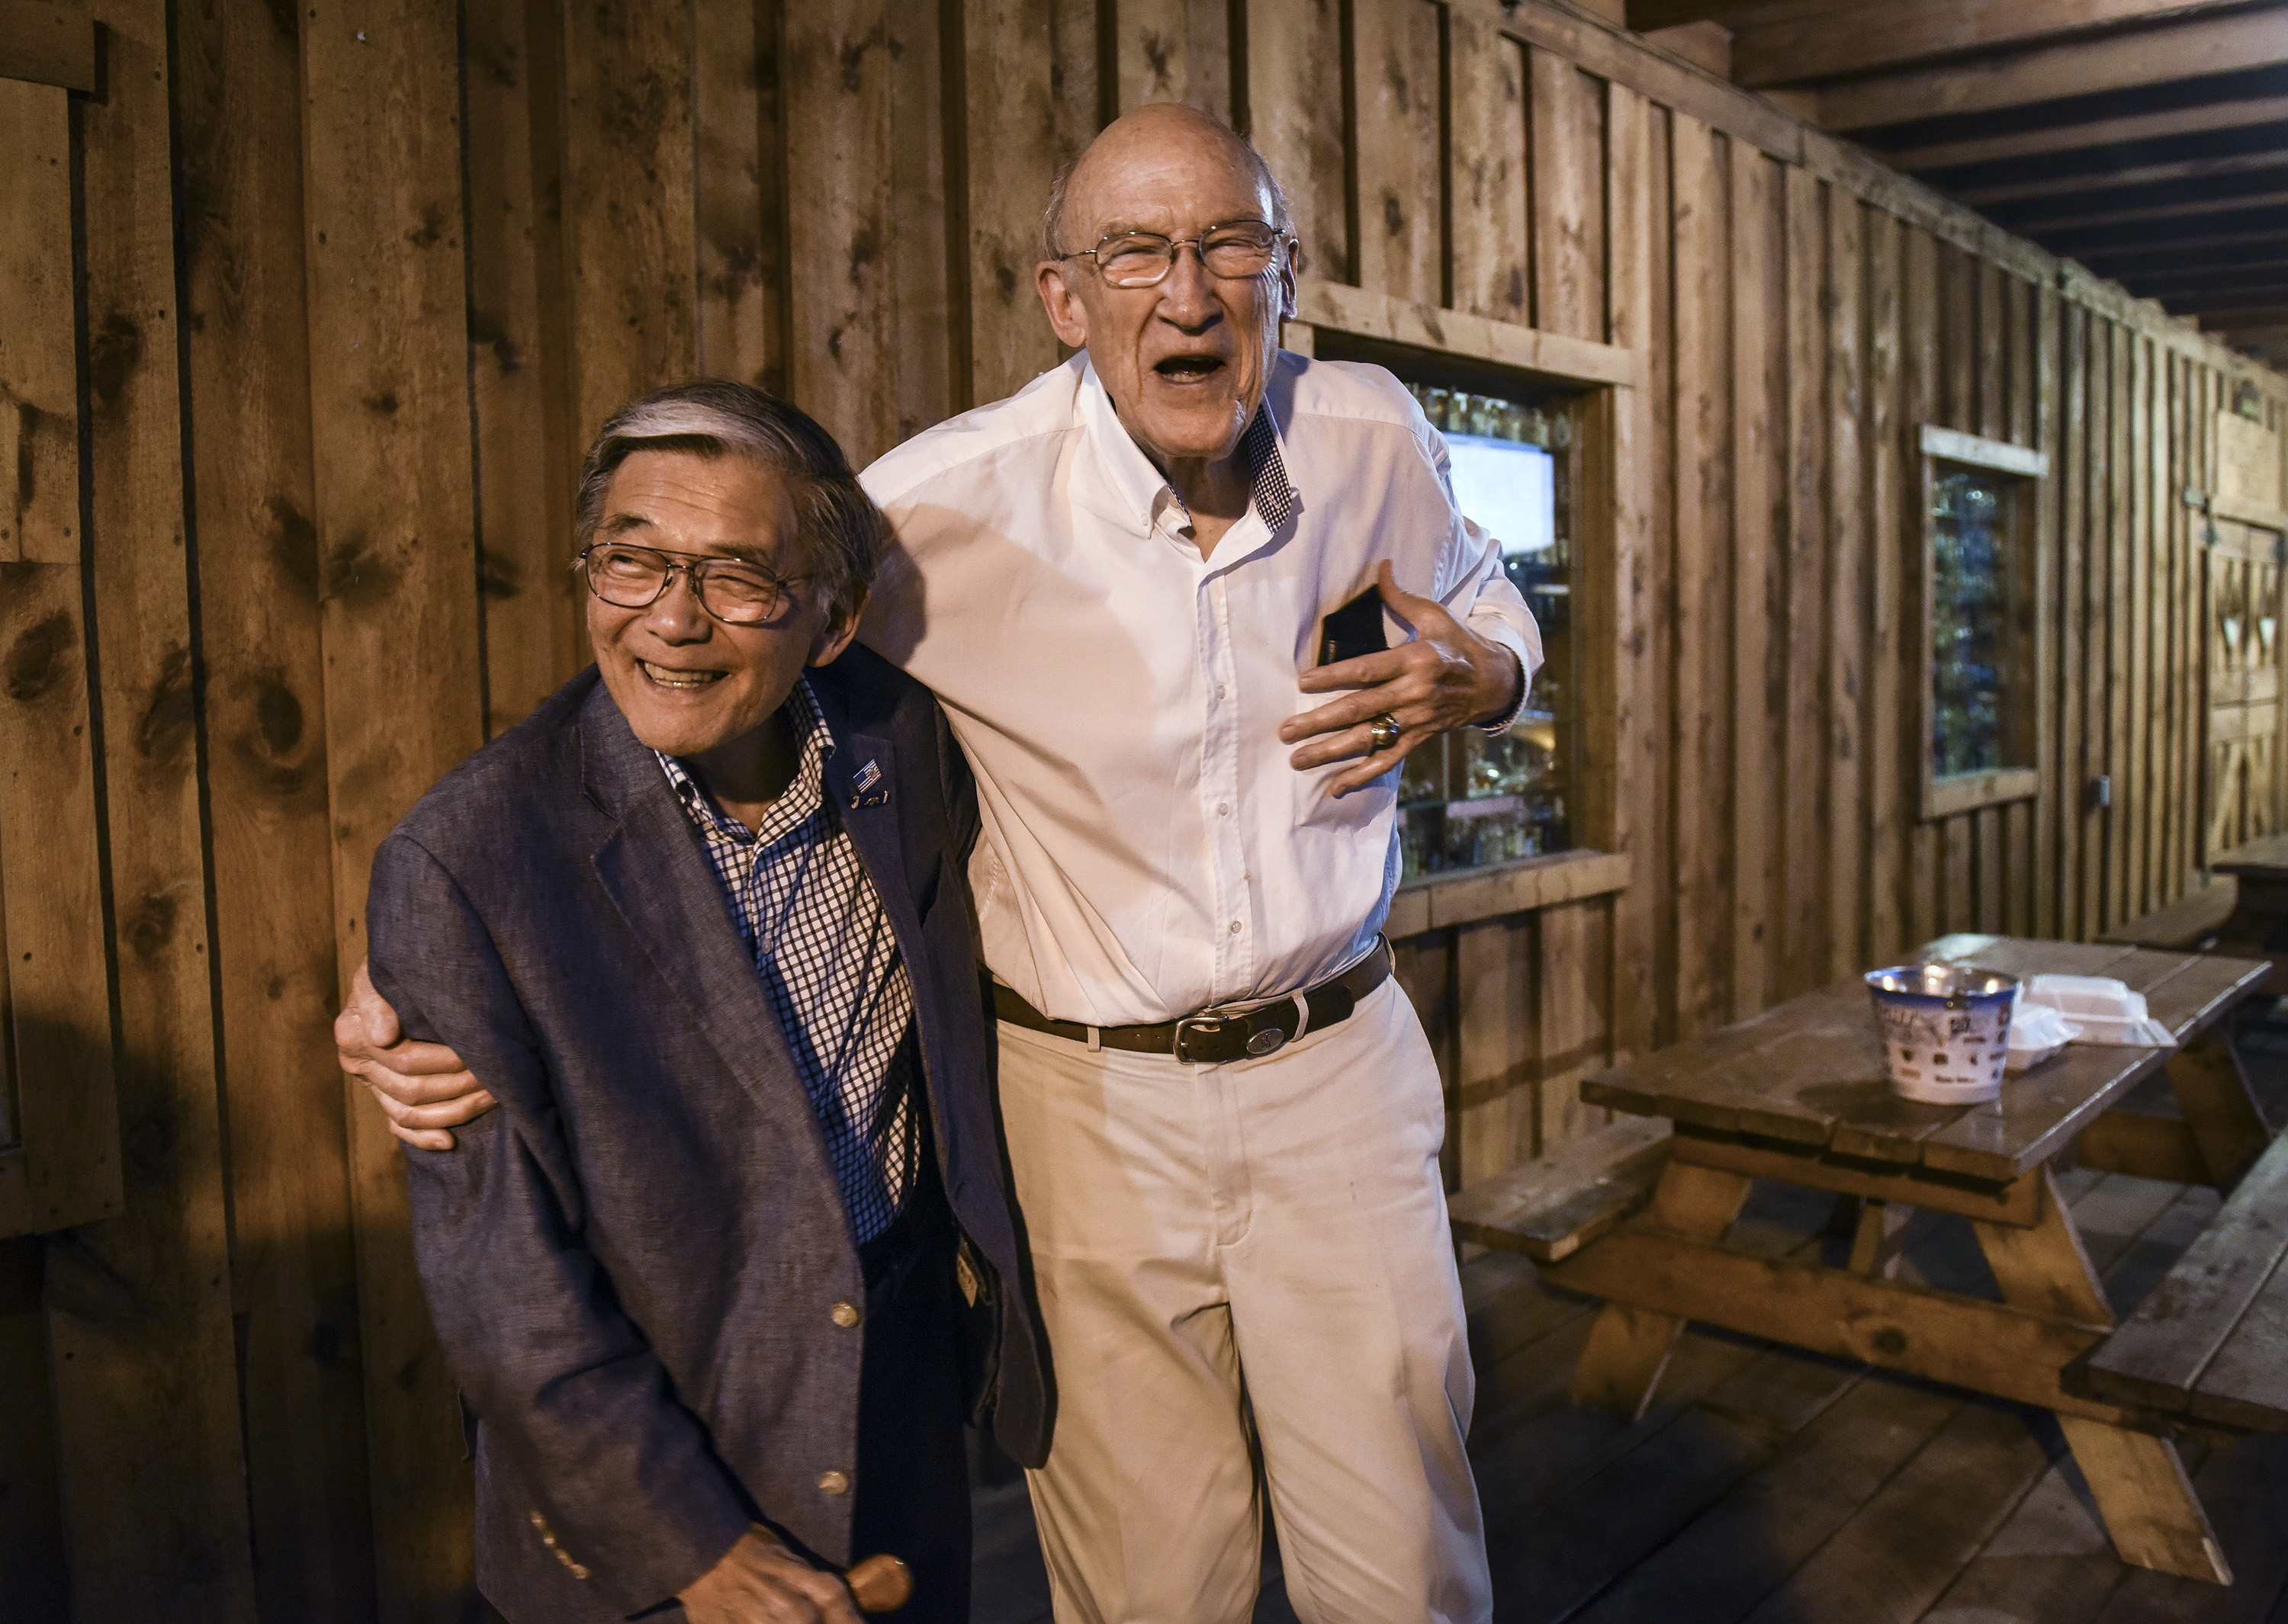 Former congressman Norman Mineta, D-Calif., and former senator Alan K. Simpson, R-Wyo., share a moment after dinner in Cody, Wyo., near the preserved site of the Heart Mountain internment camp. MUST CREDIT: Washington Post photo by Bill O'Leary